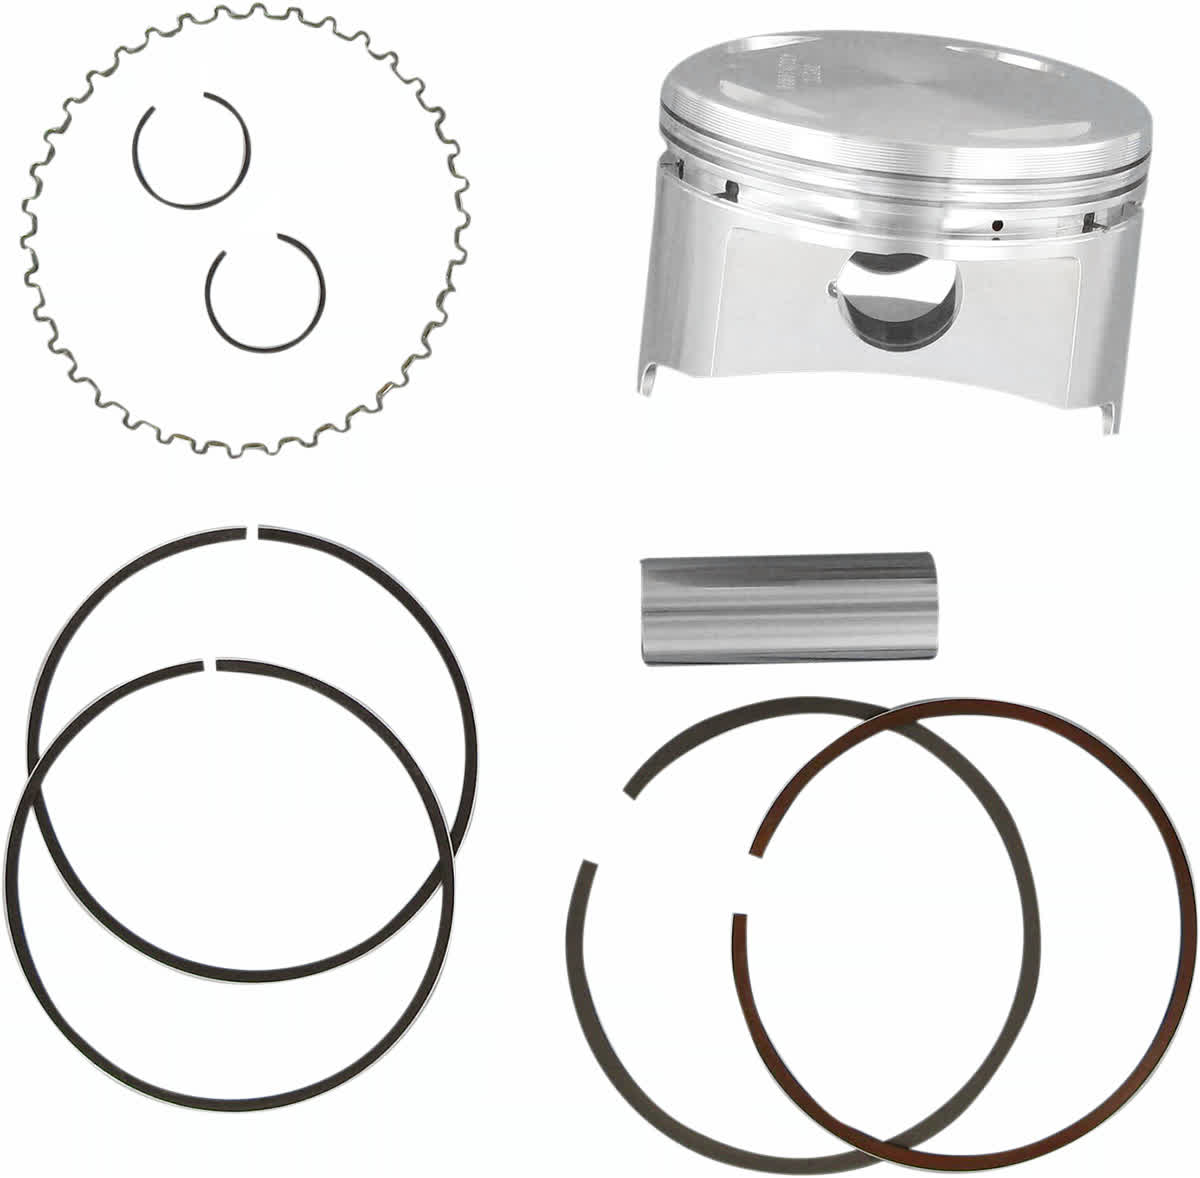 Wiseco-Forged-Piston-Kit-100mm-11-1-Comp-Fits-00-07-Honda-XR650R